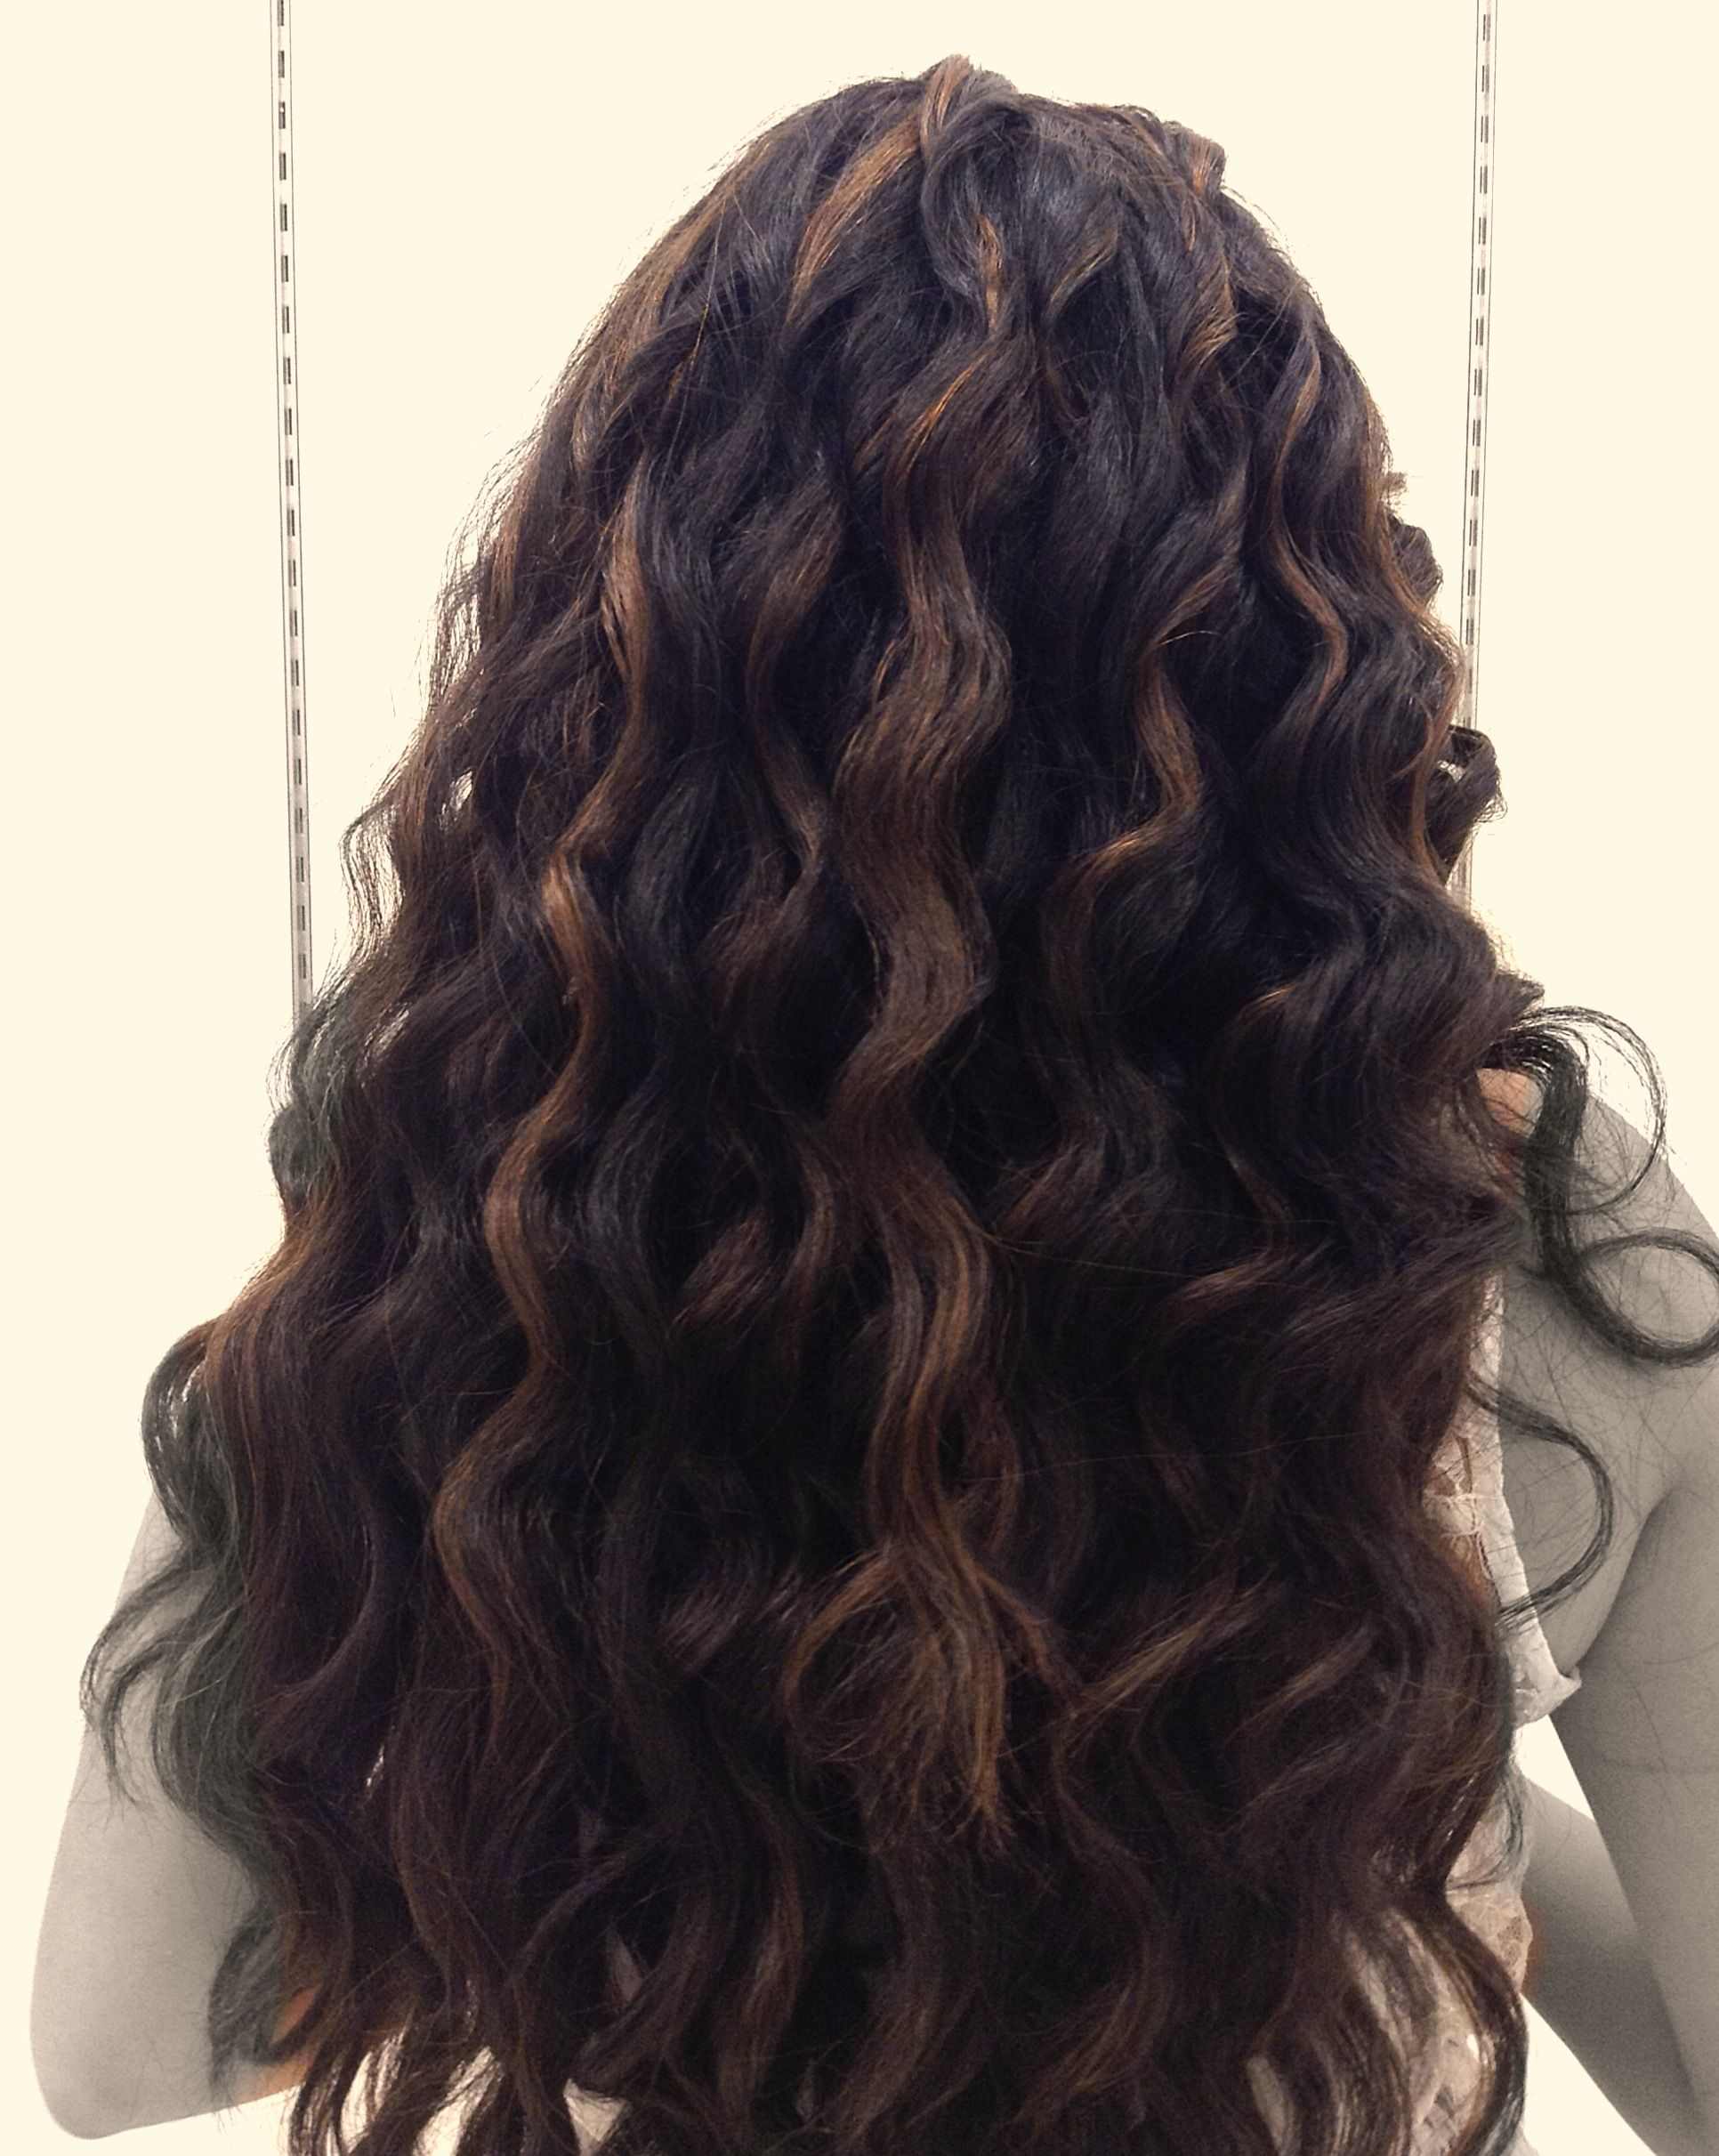 Pin By Seema Badrbigi On Just A Tangle Of Hair Hair Highlights Highlights Curly Hair Hair Pale Skin